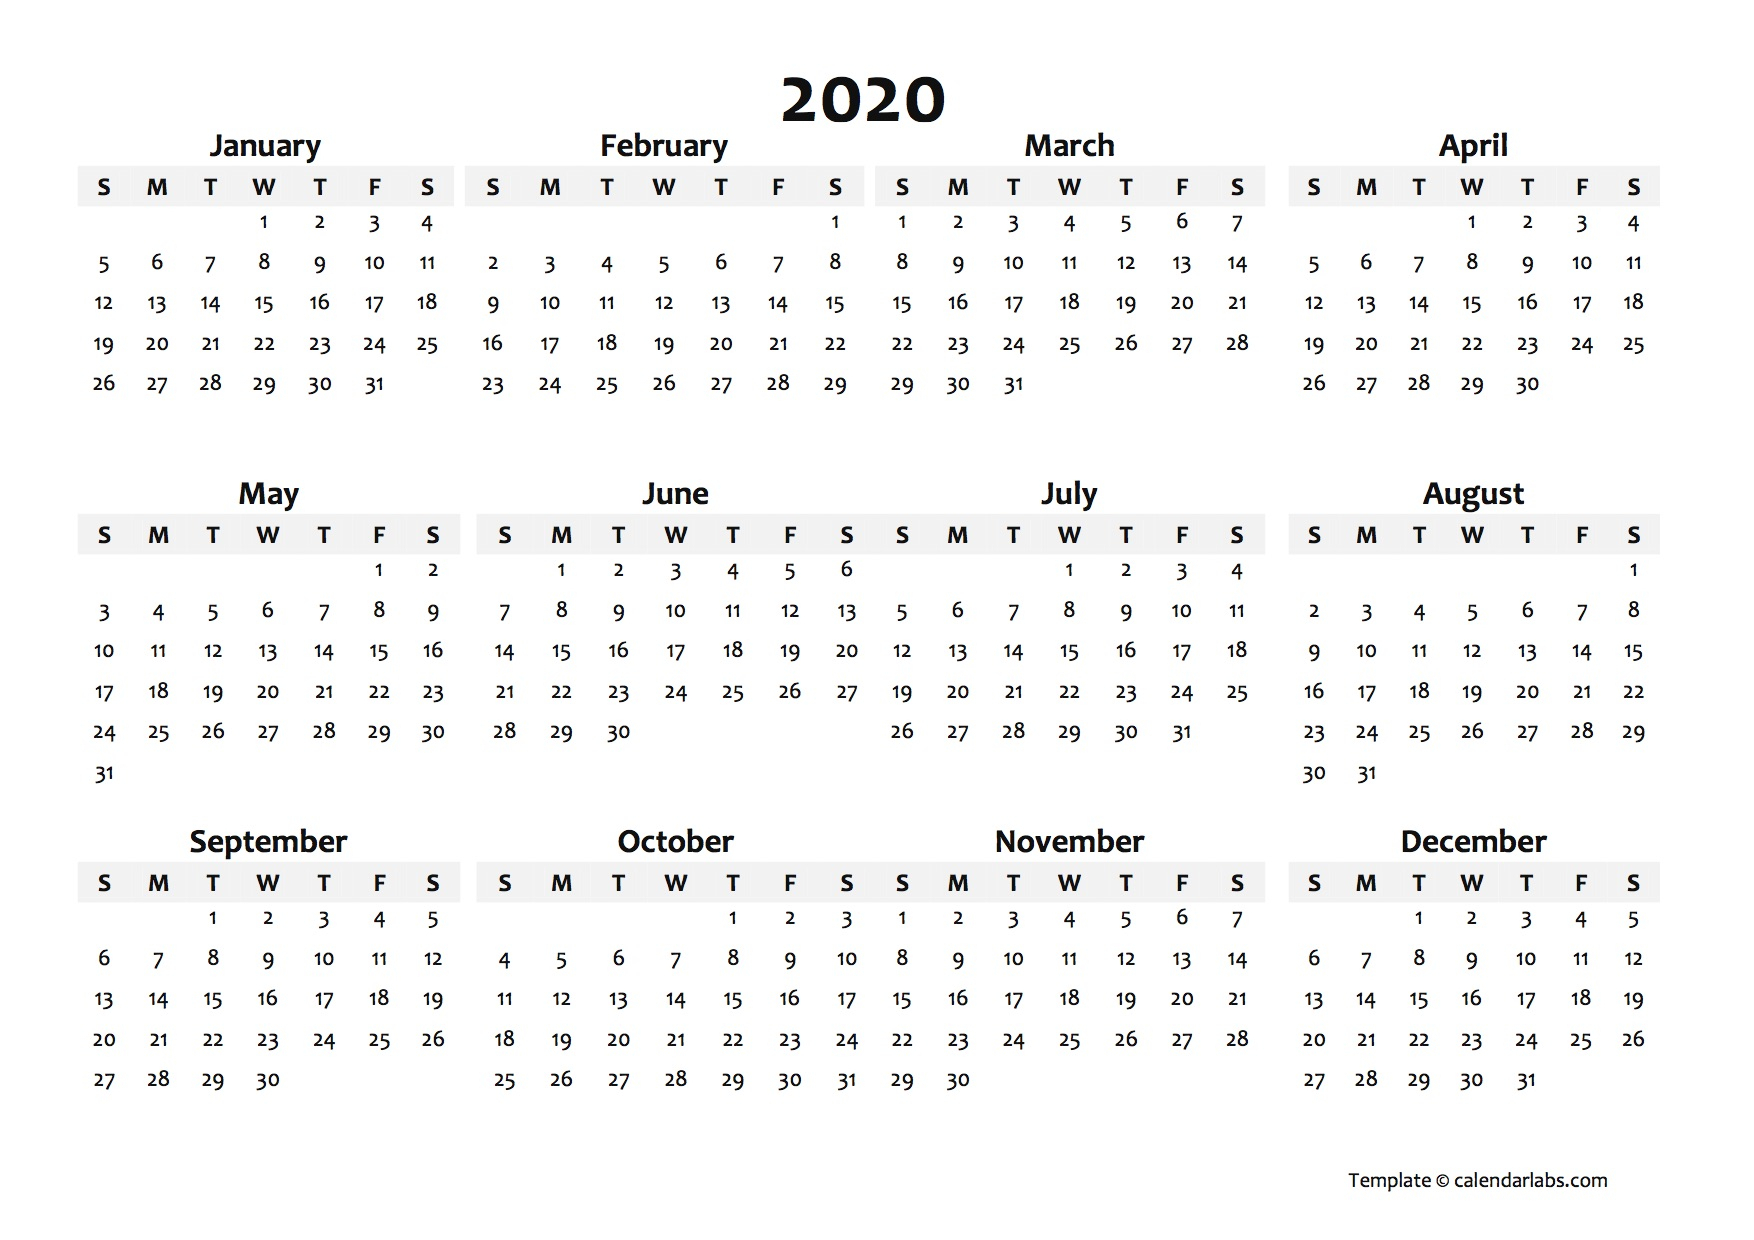 2020 Yearly Blank Calendar Template - Free Printable Templates